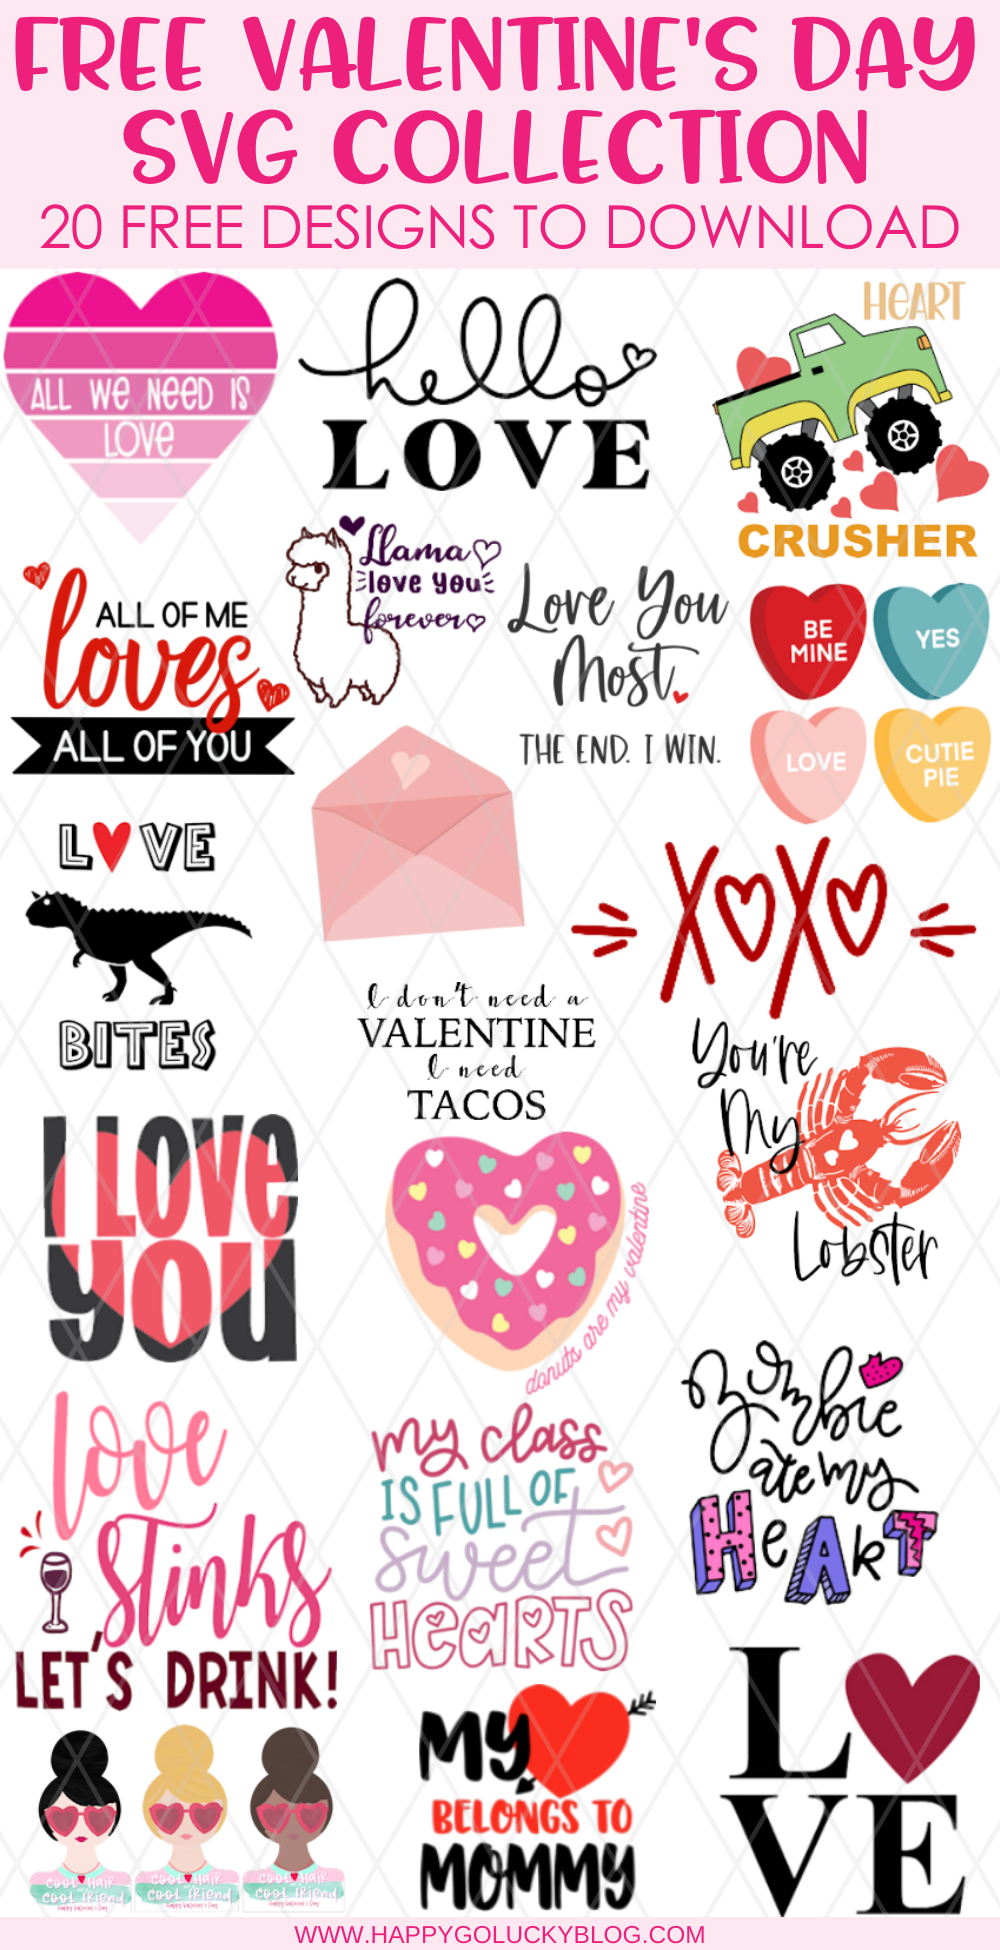 A collection of 20 free Valentine's Day SVG Cut Files.